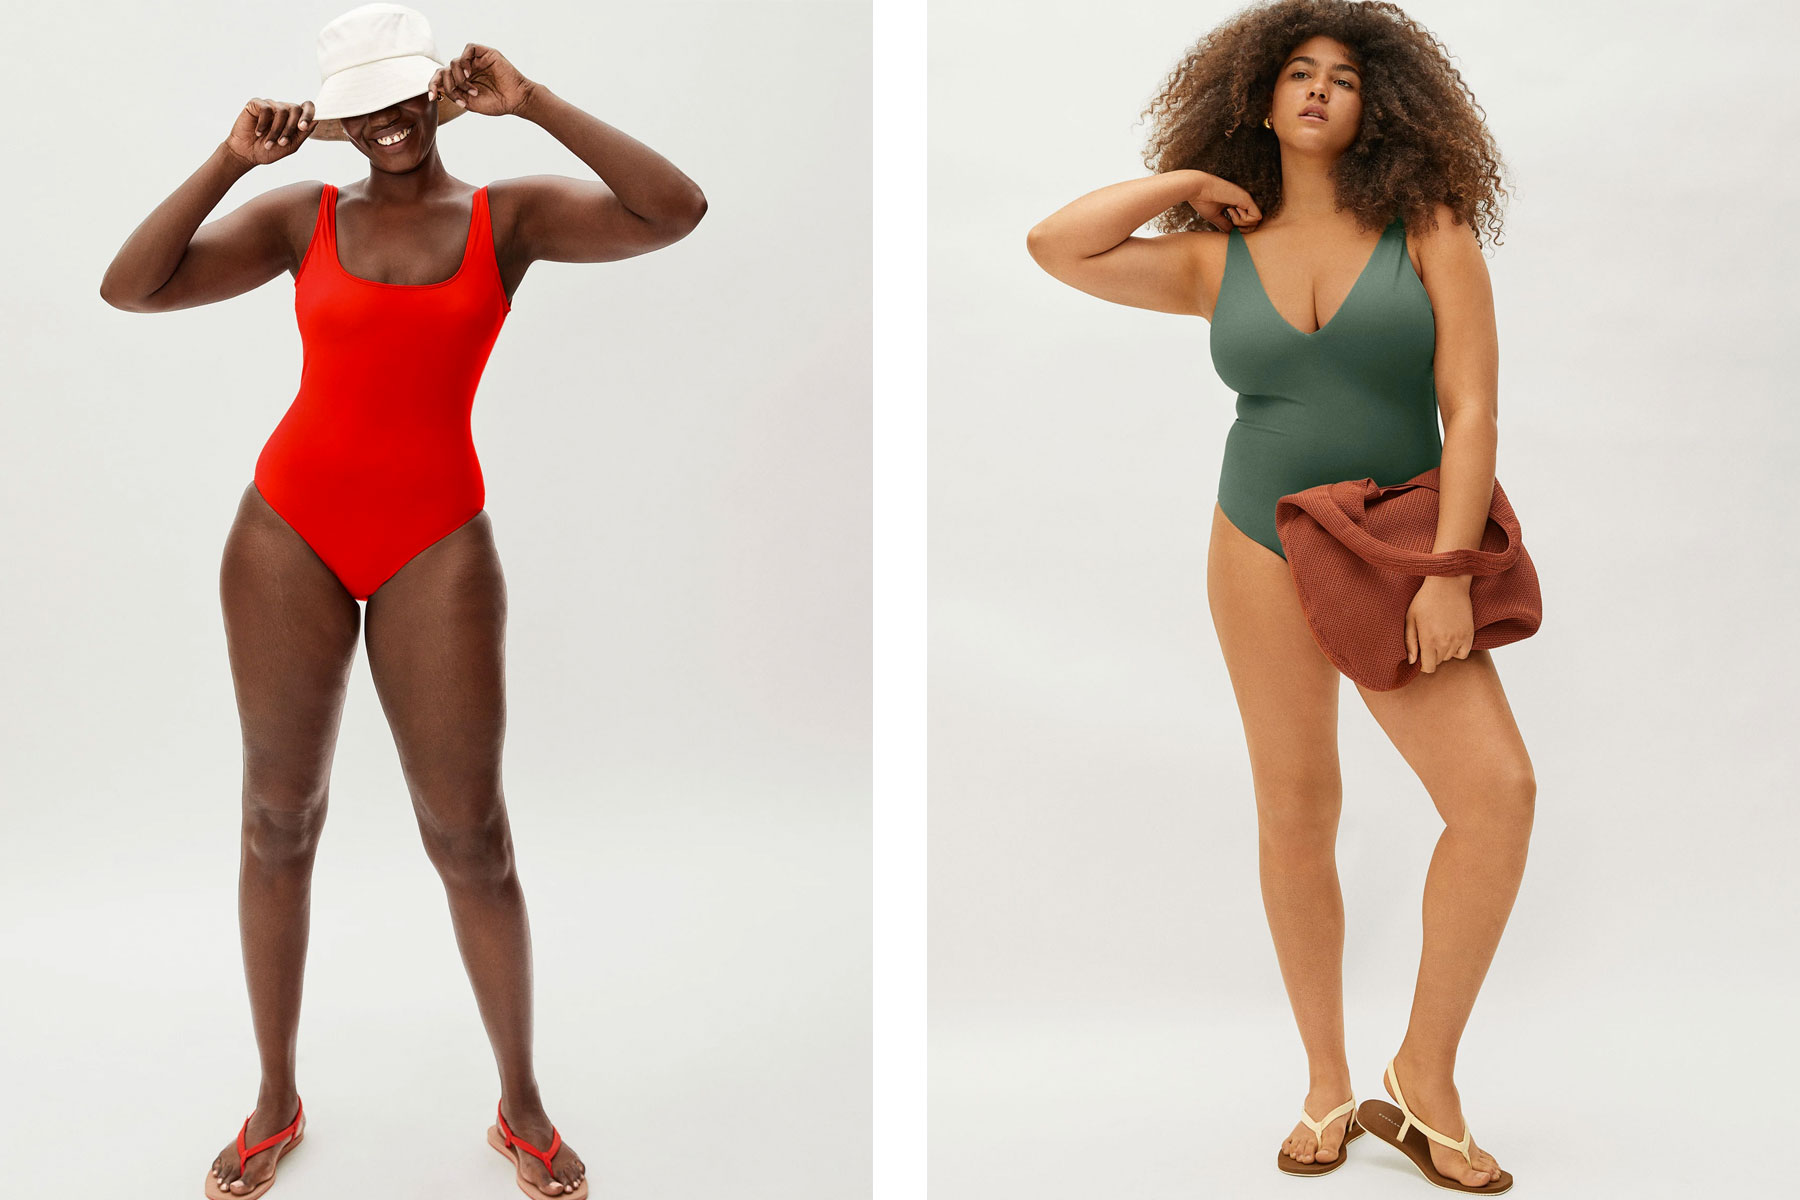 Women wearing red and green one piece swimsuits